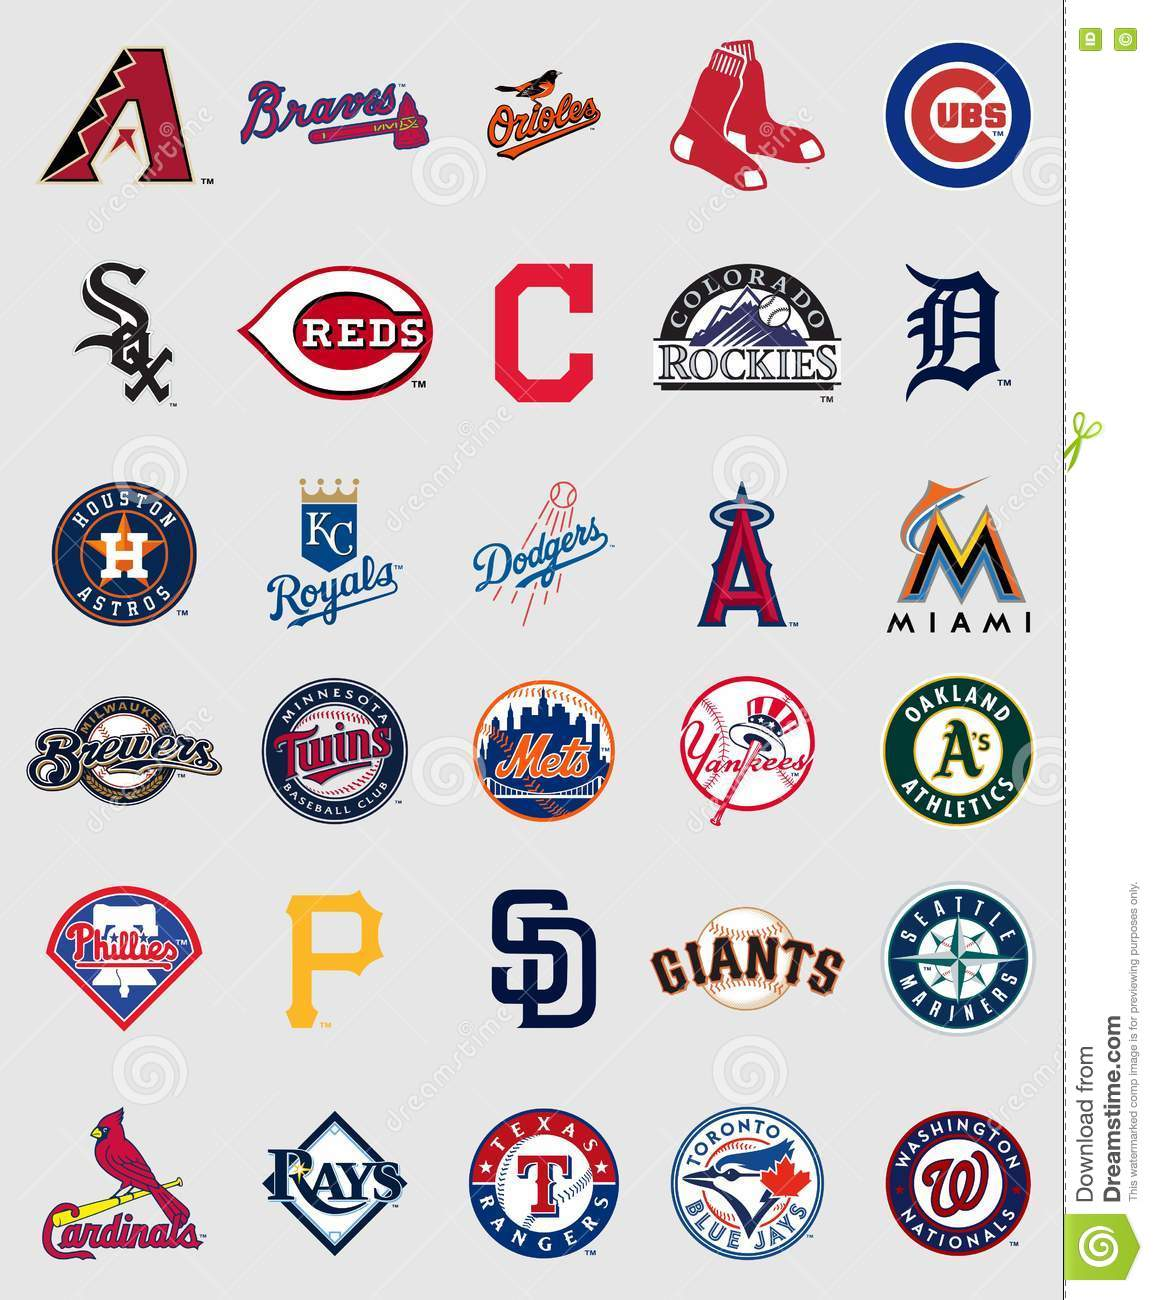 mlb logos 2017 pictures to pin on pinterest pinsdaddy